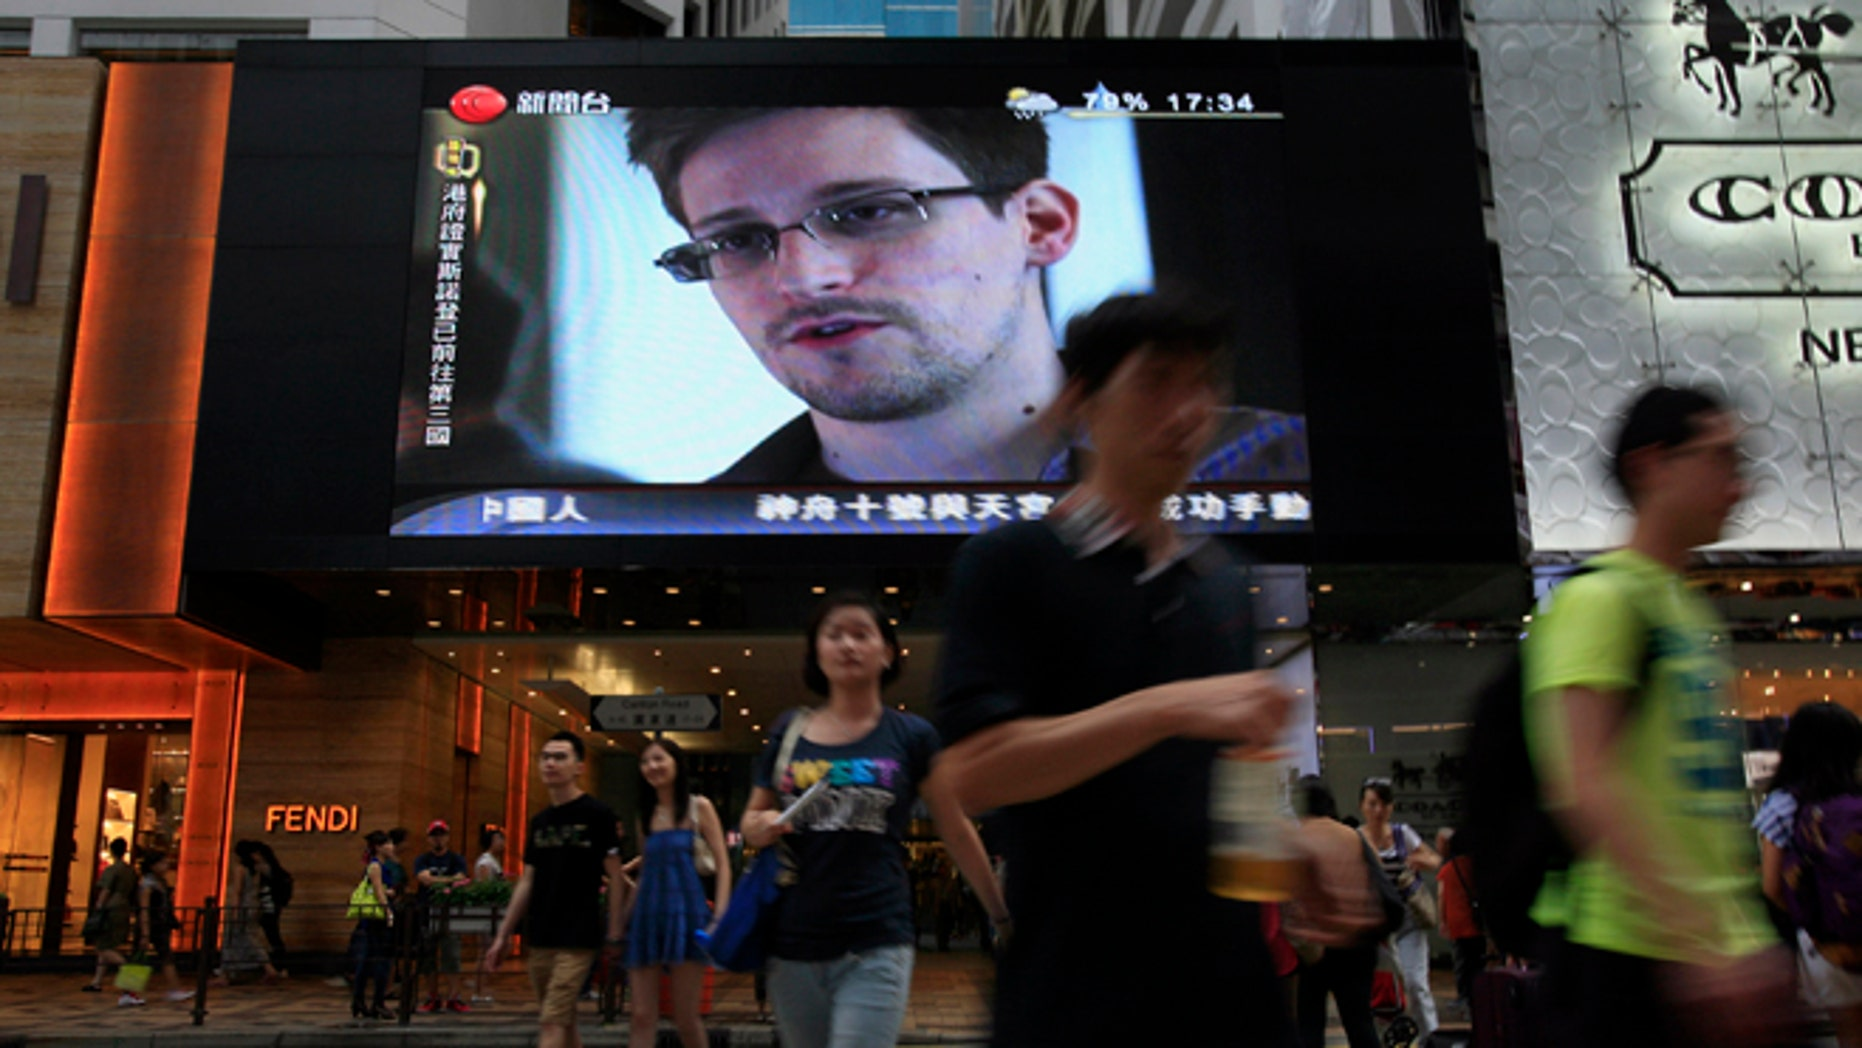 FILE - This June 23, 2013 file photo shows a TV screen shows a news report of Edward Snowden, a former CIA employee who leaked top-secret documents about sweeping U.S. surveillance programs, at a shopping mall in Hong Kong. The saga of Edward Snowden and the NSA makes one thing clear: The United States' central role in developing the Internet and hosting its most powerful players has made it the global leader in the surveillance game . Other countries, from dictatorships to democracies, are also avid snoopers, tapping into the high-capacity fiber optic cables to intercept Internet traffic, scooping their citizens' data off domestic servers, and even launching cyberattacks to win access to foreign networks. (AP Photo/Vincent Yu, File)